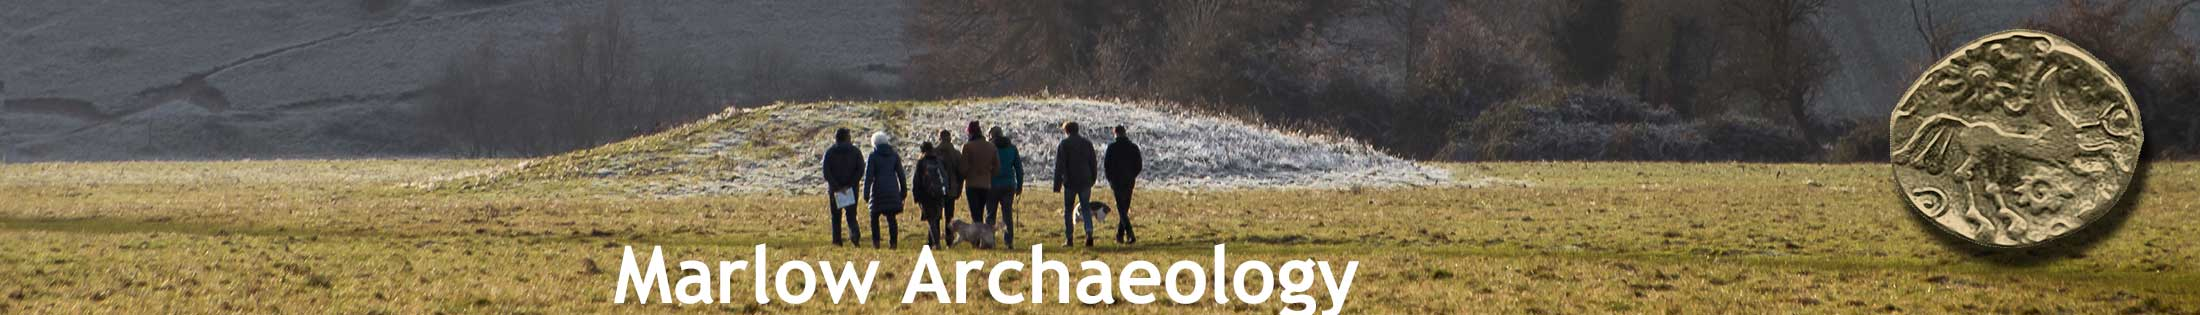 Marlow Archaeology